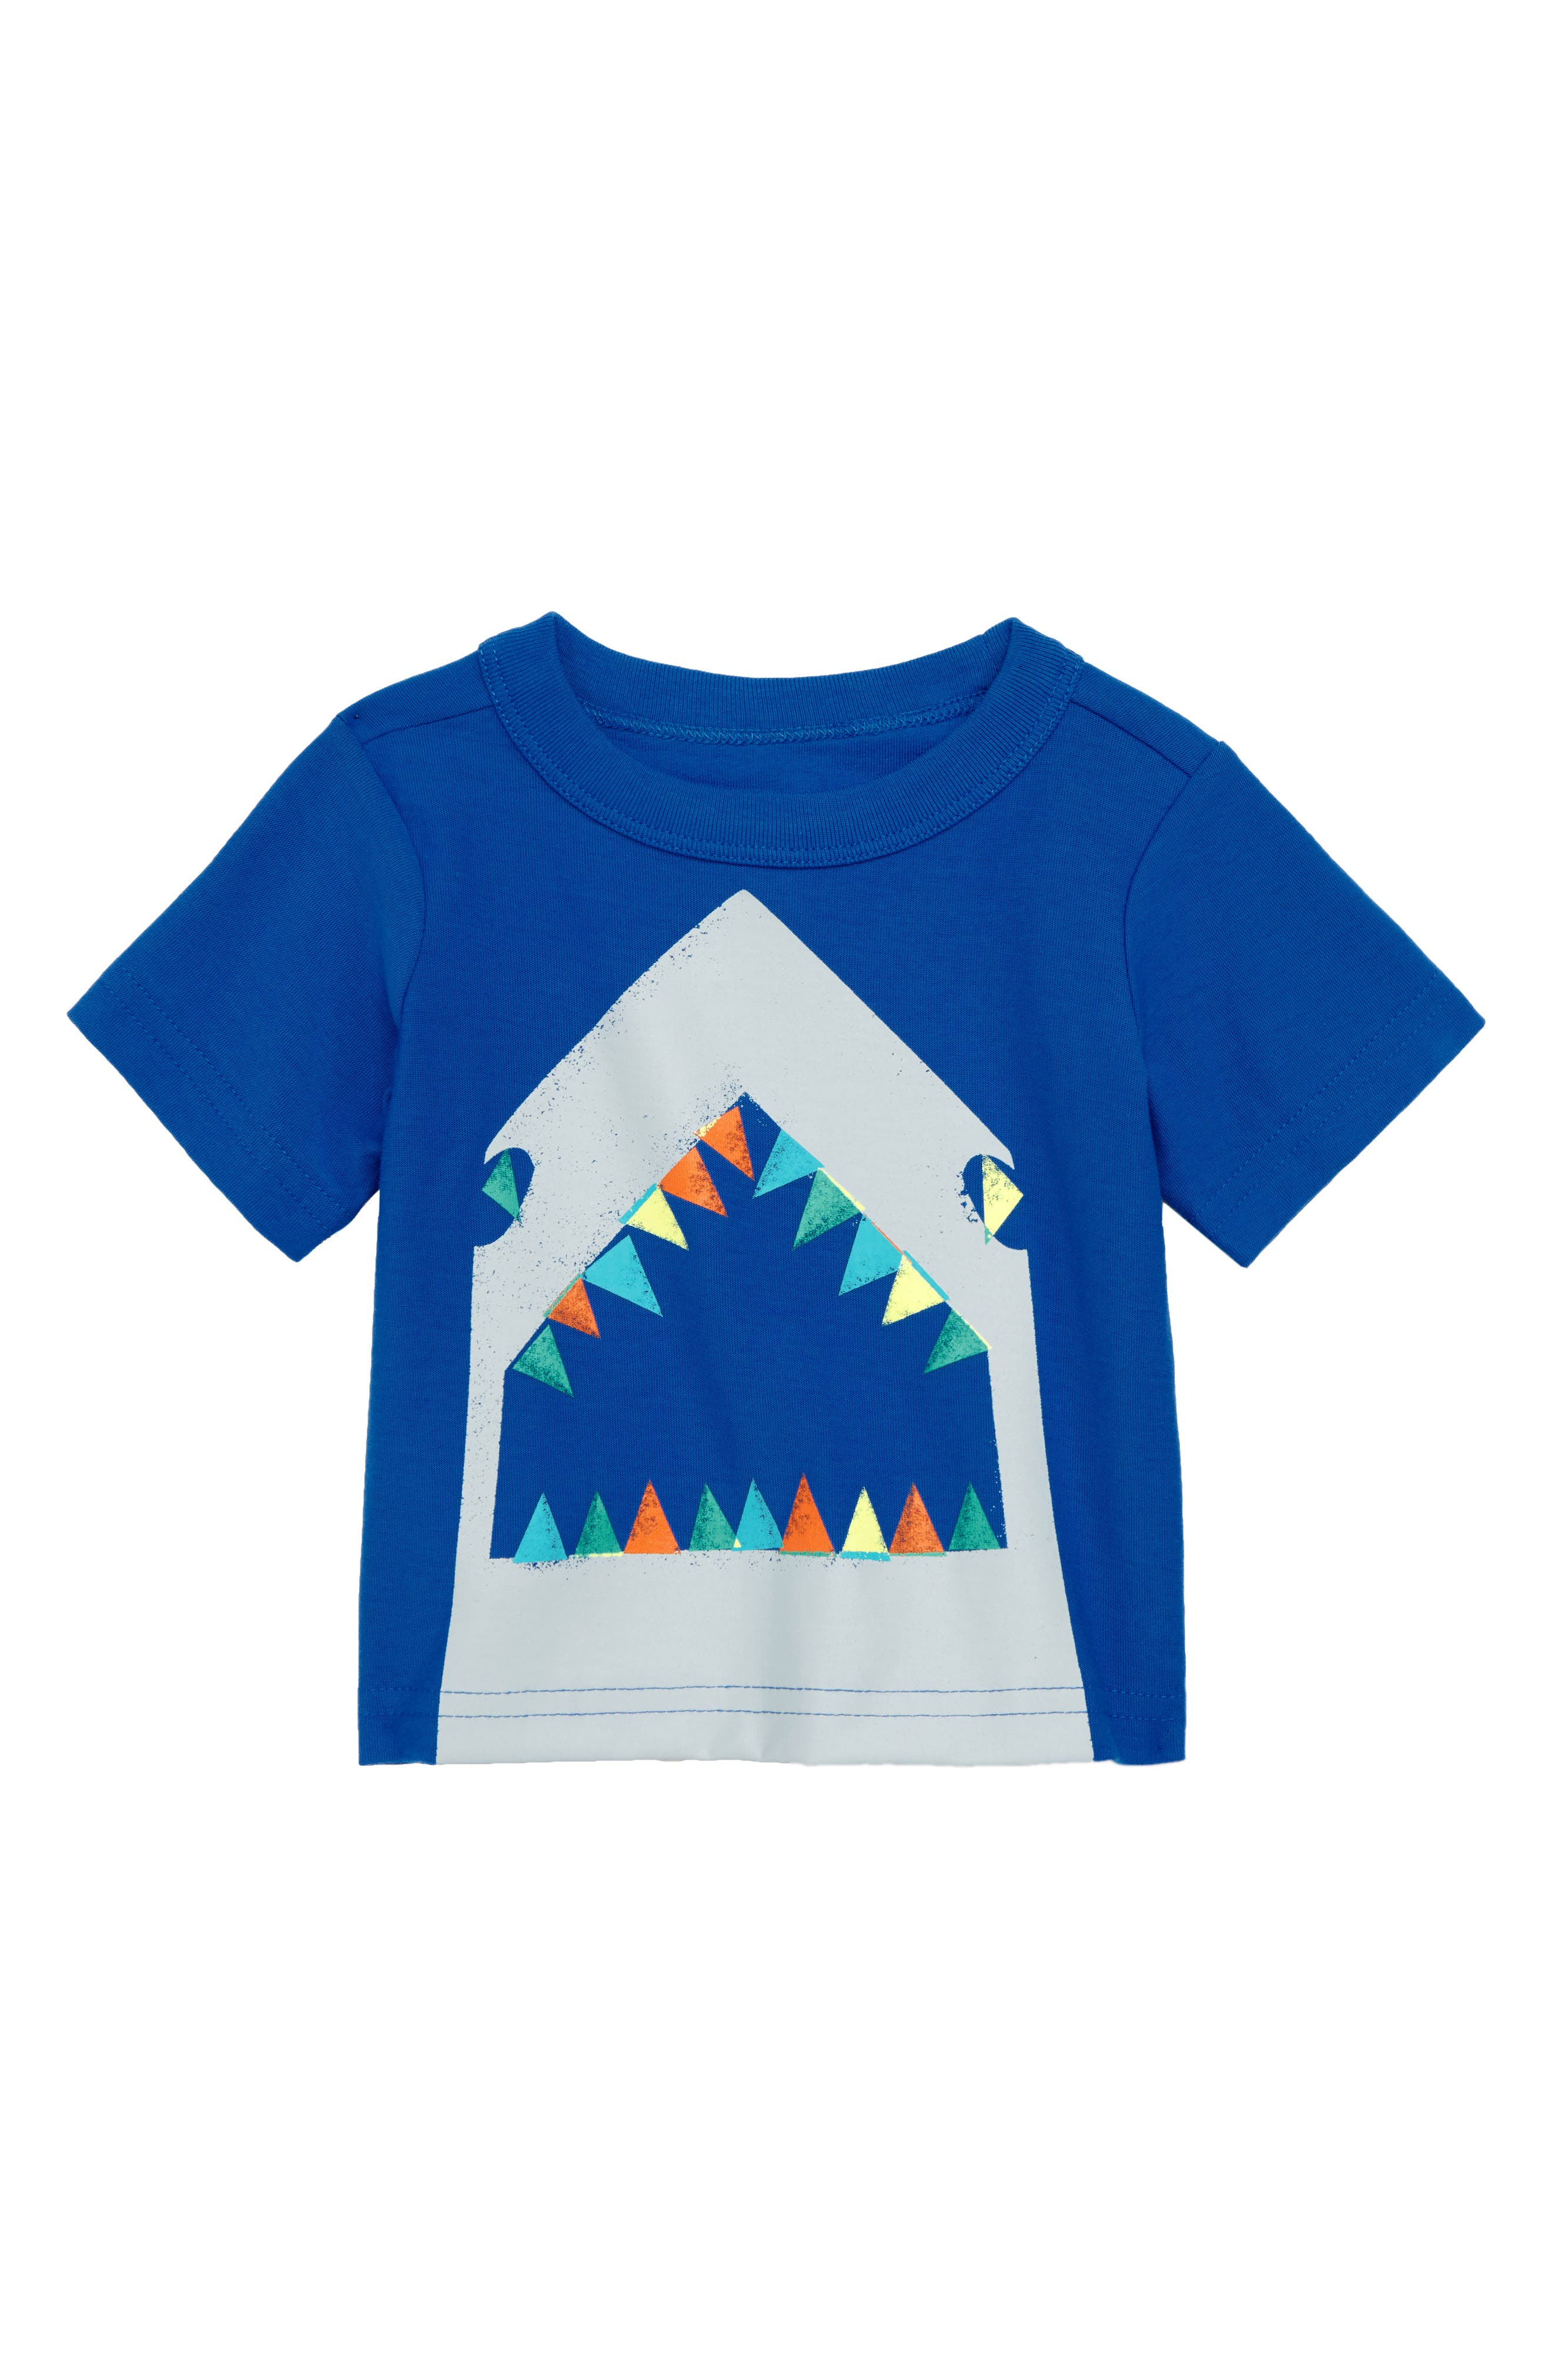 TEA COLLECTION,                             Great White Graphic T-Shirt,                             Main thumbnail 1, color,                             482